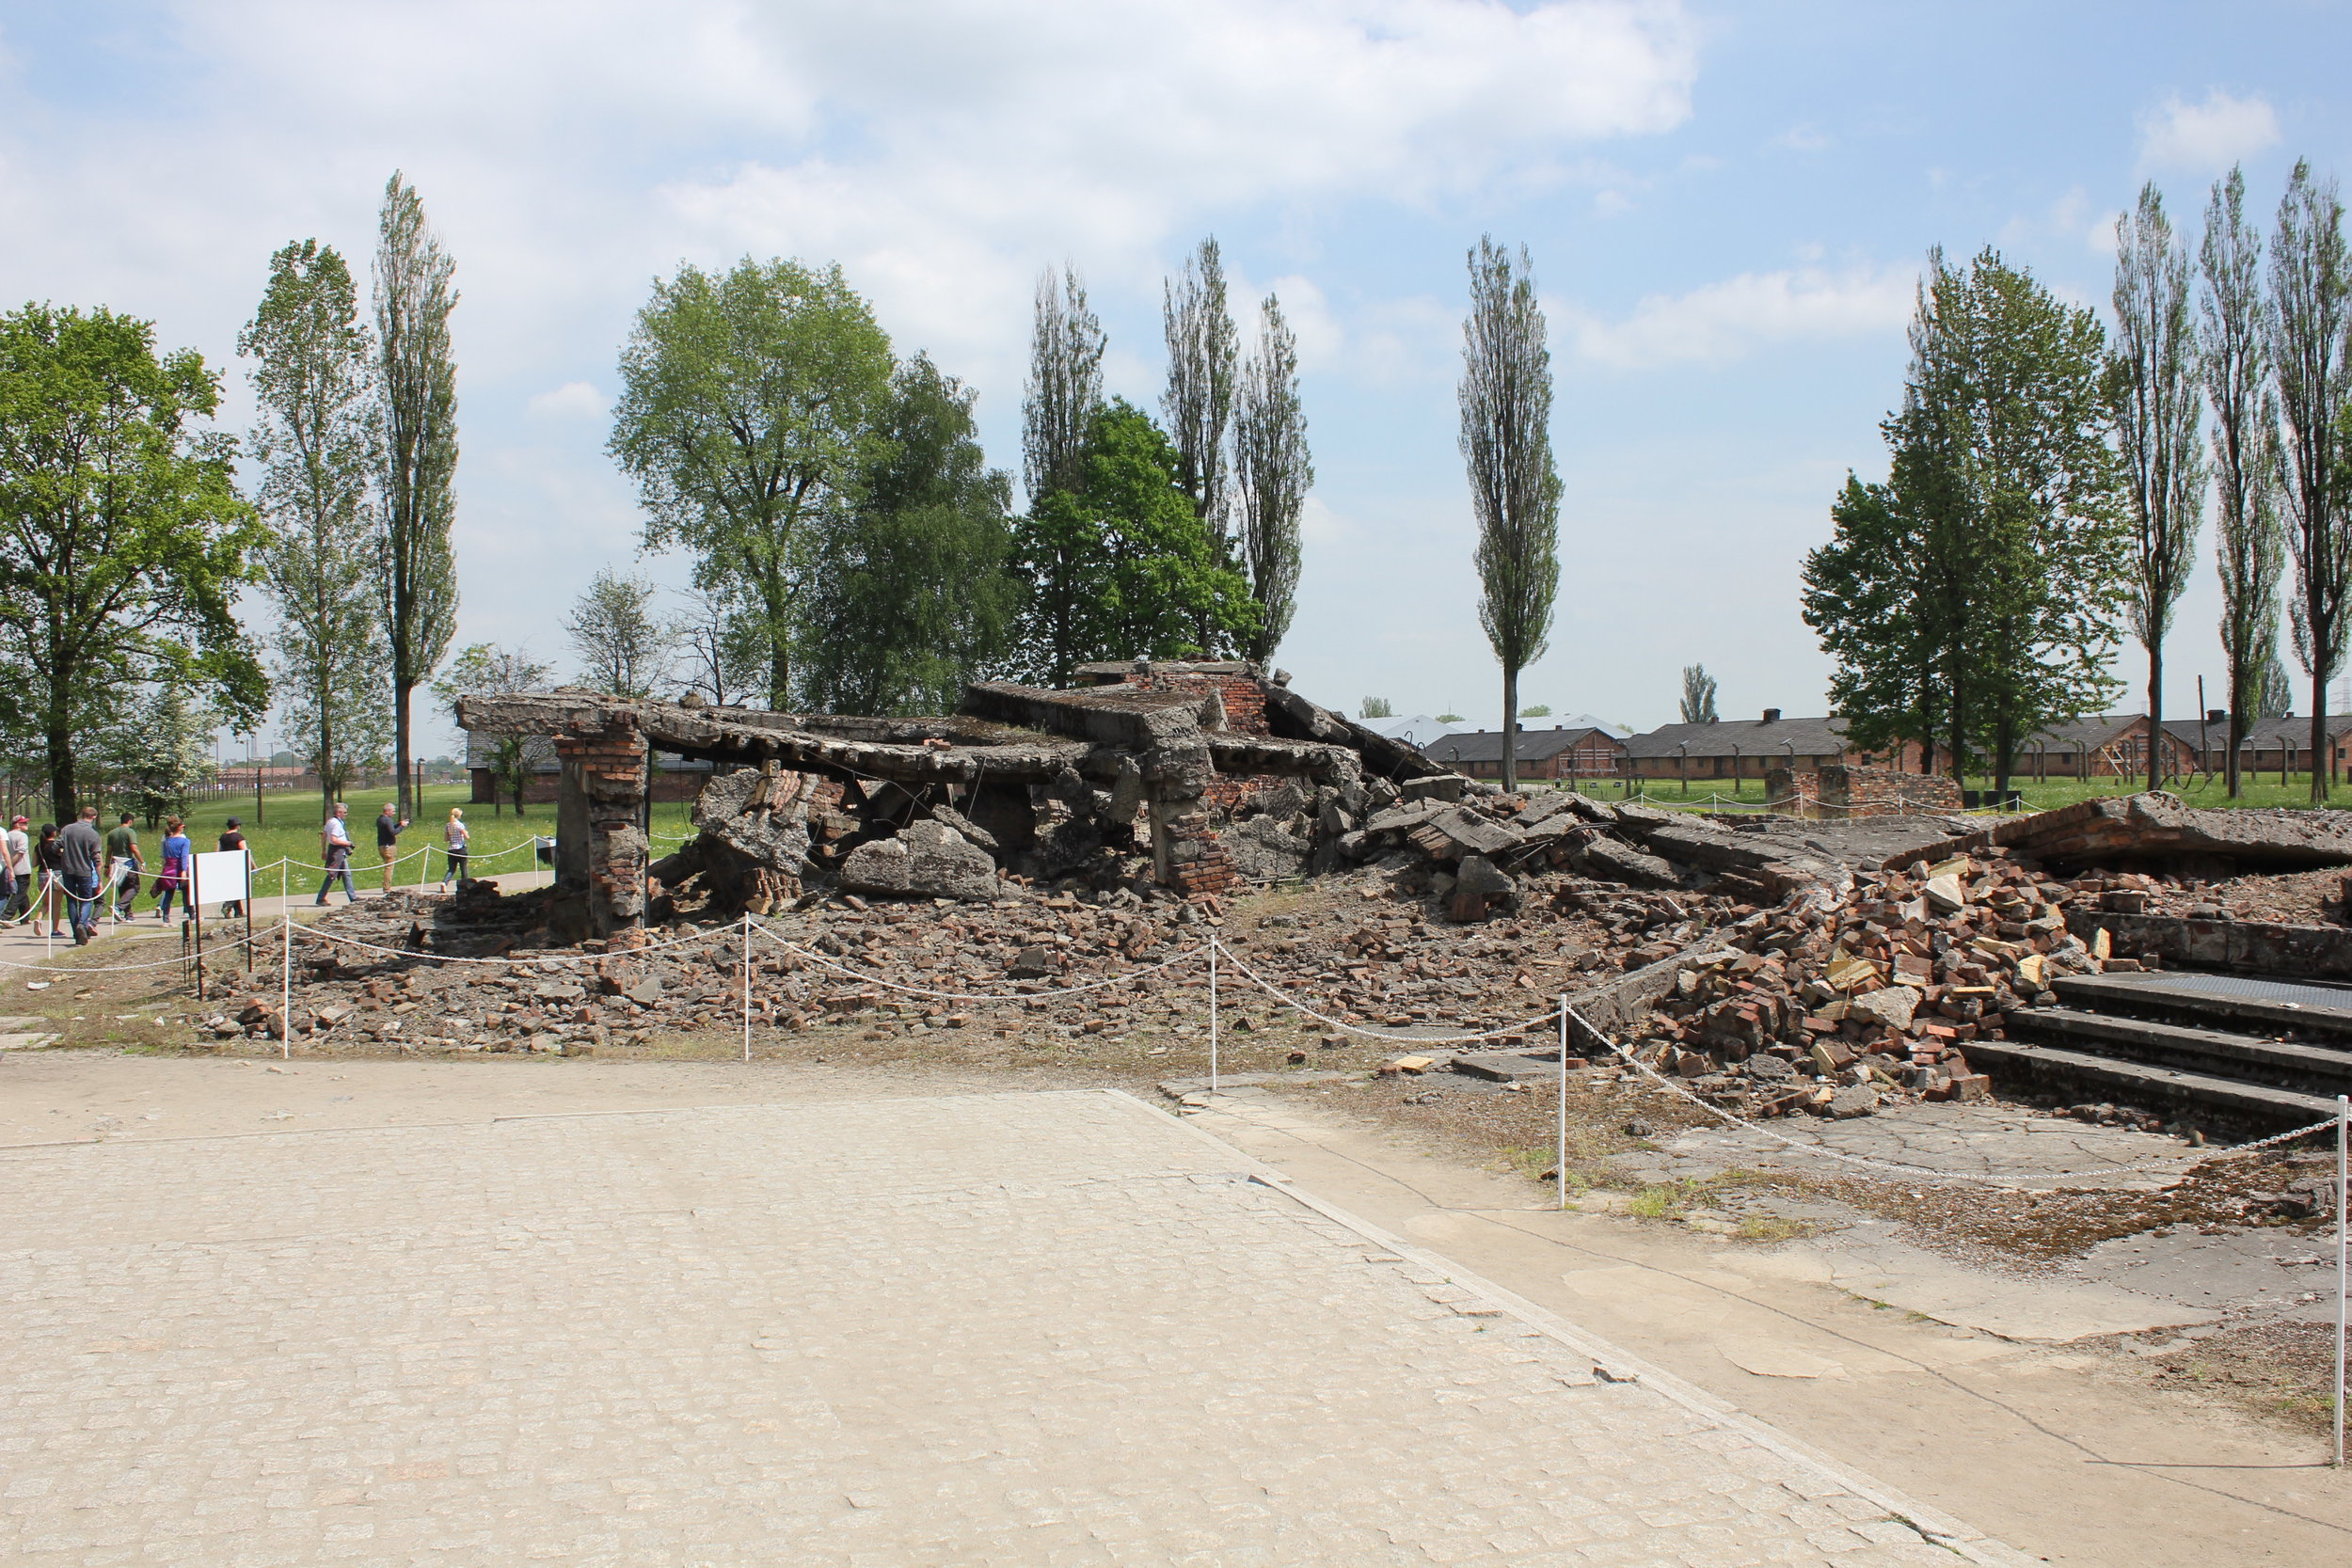 The ruins of Krema II – together with Krema III, this was the largest and deadliest gas chamber at Auschwitz–Birkenau, the site where over 500,000 Jews were gassed to death. Most victims would have walked from the platform where they got off the train directly to these gas chambers.